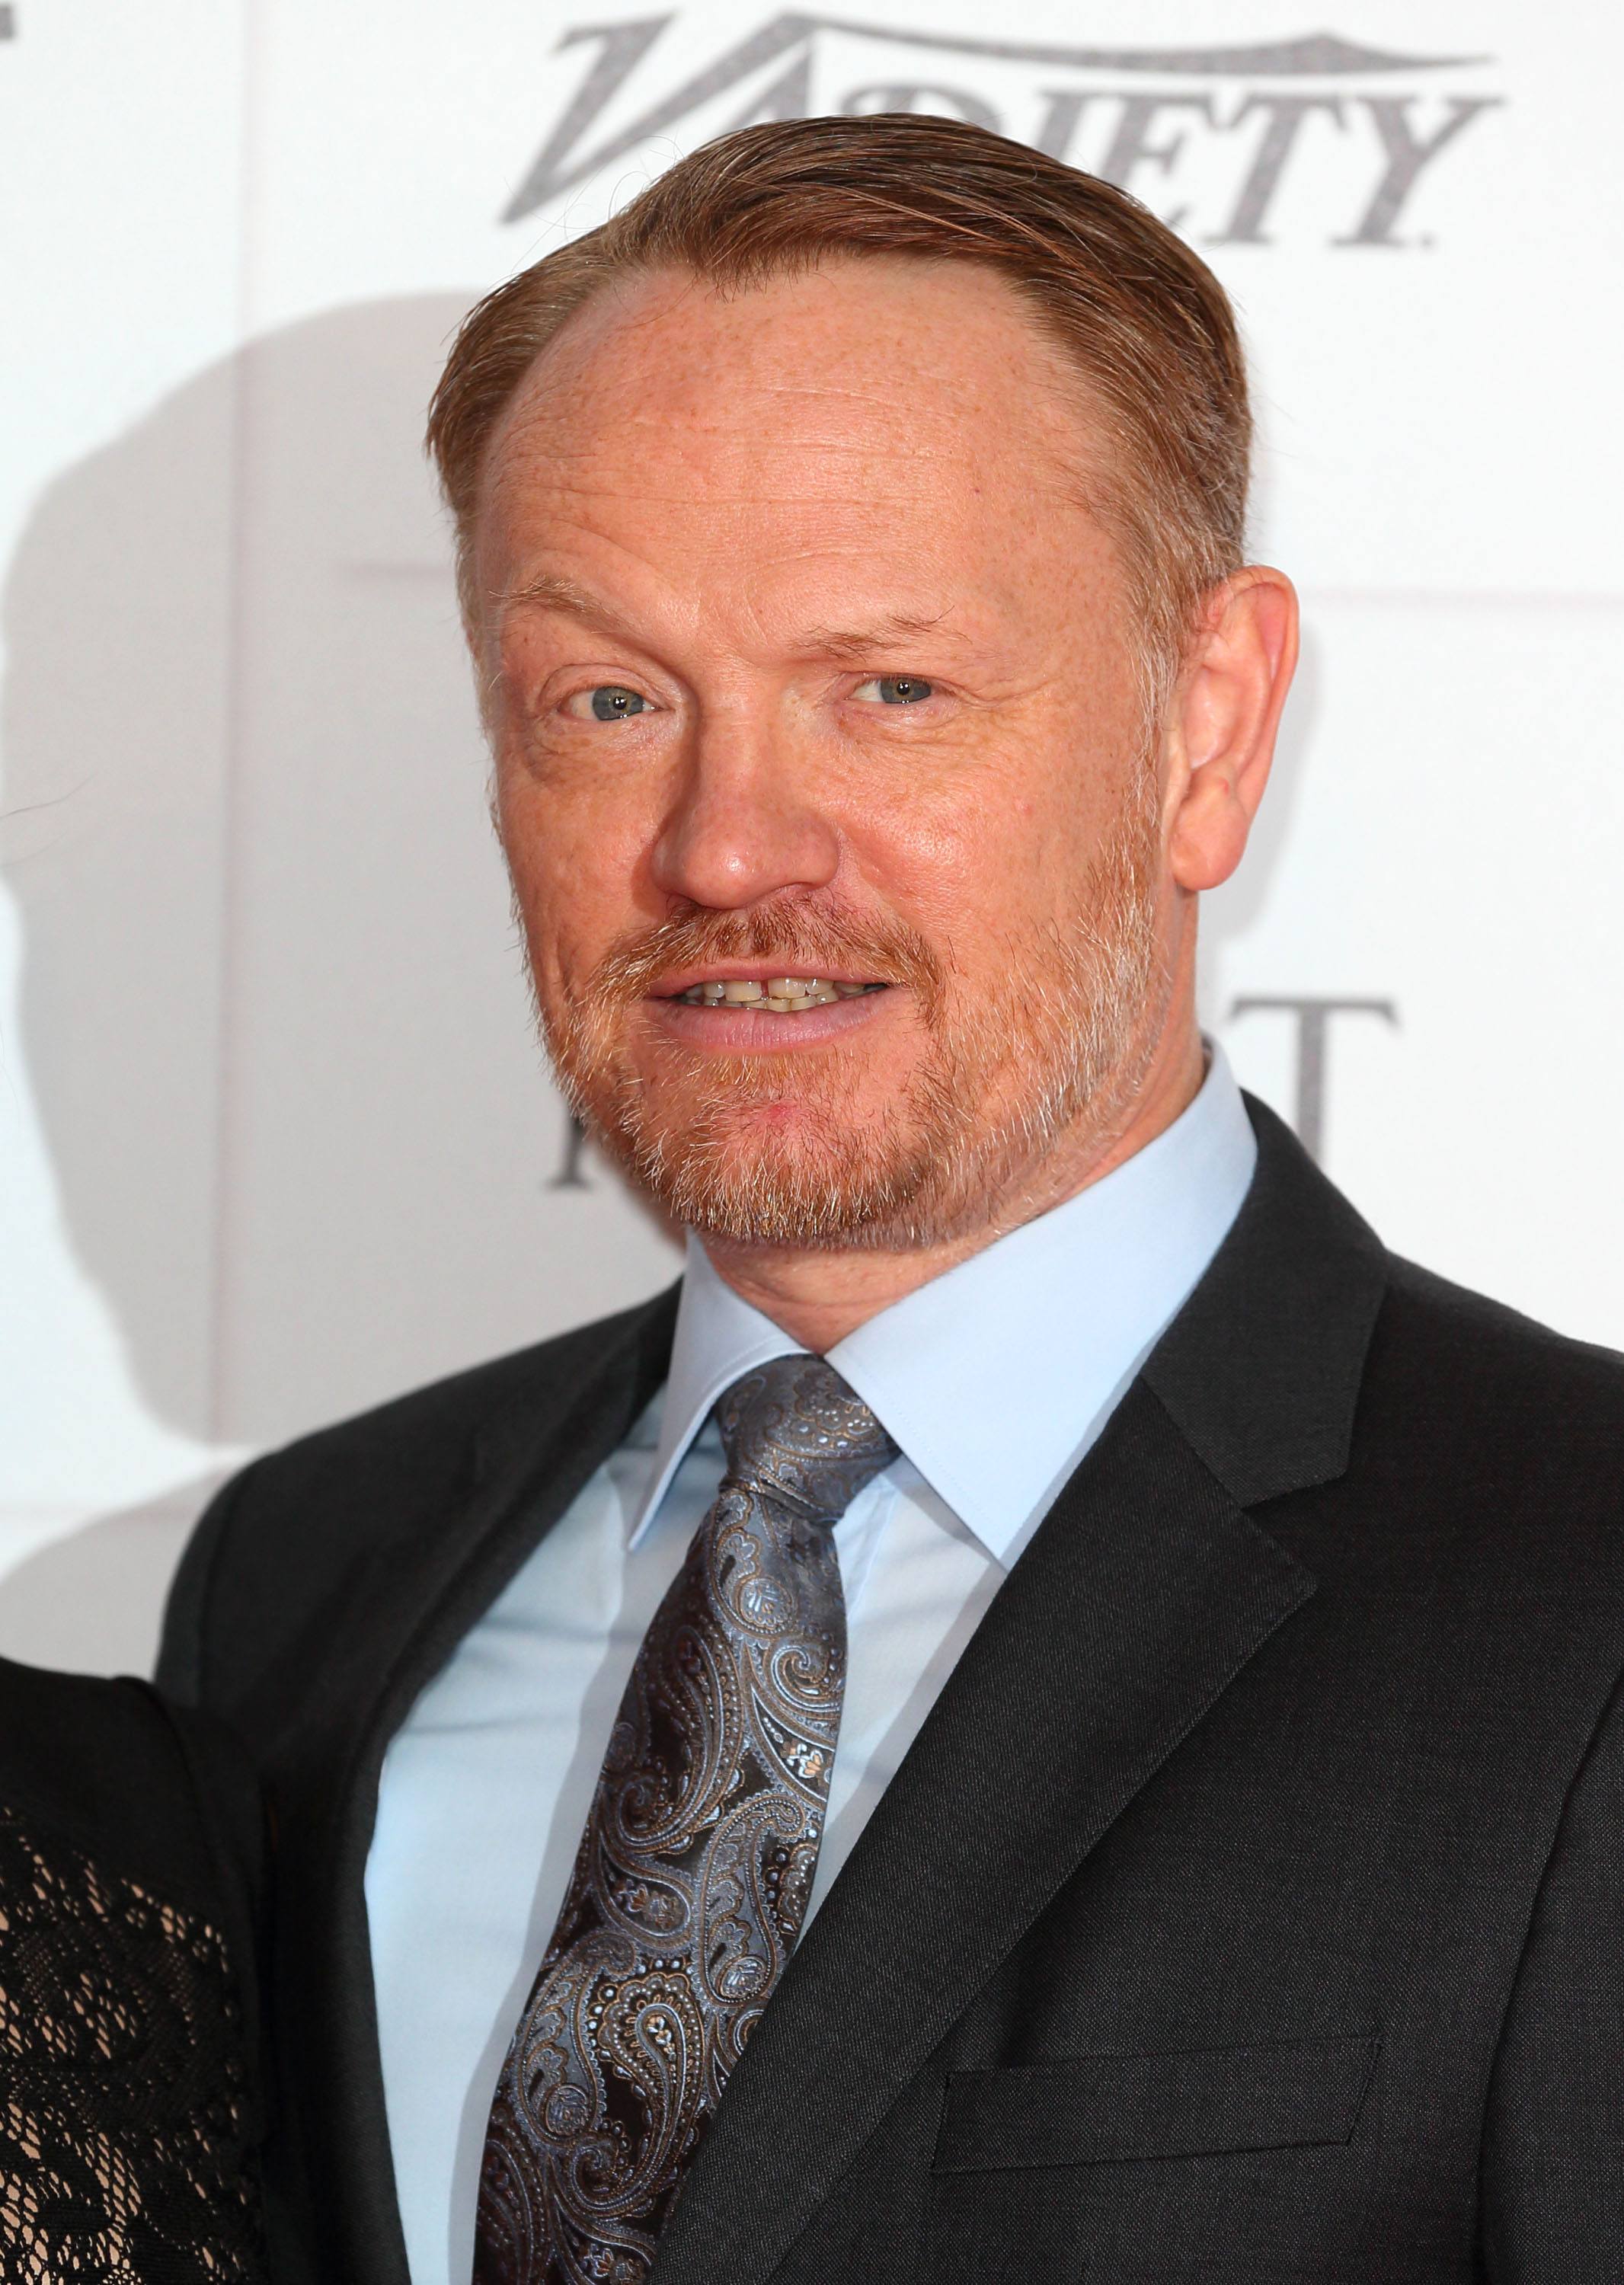 Jared Harris posed on the red carpet at the BIFAs.